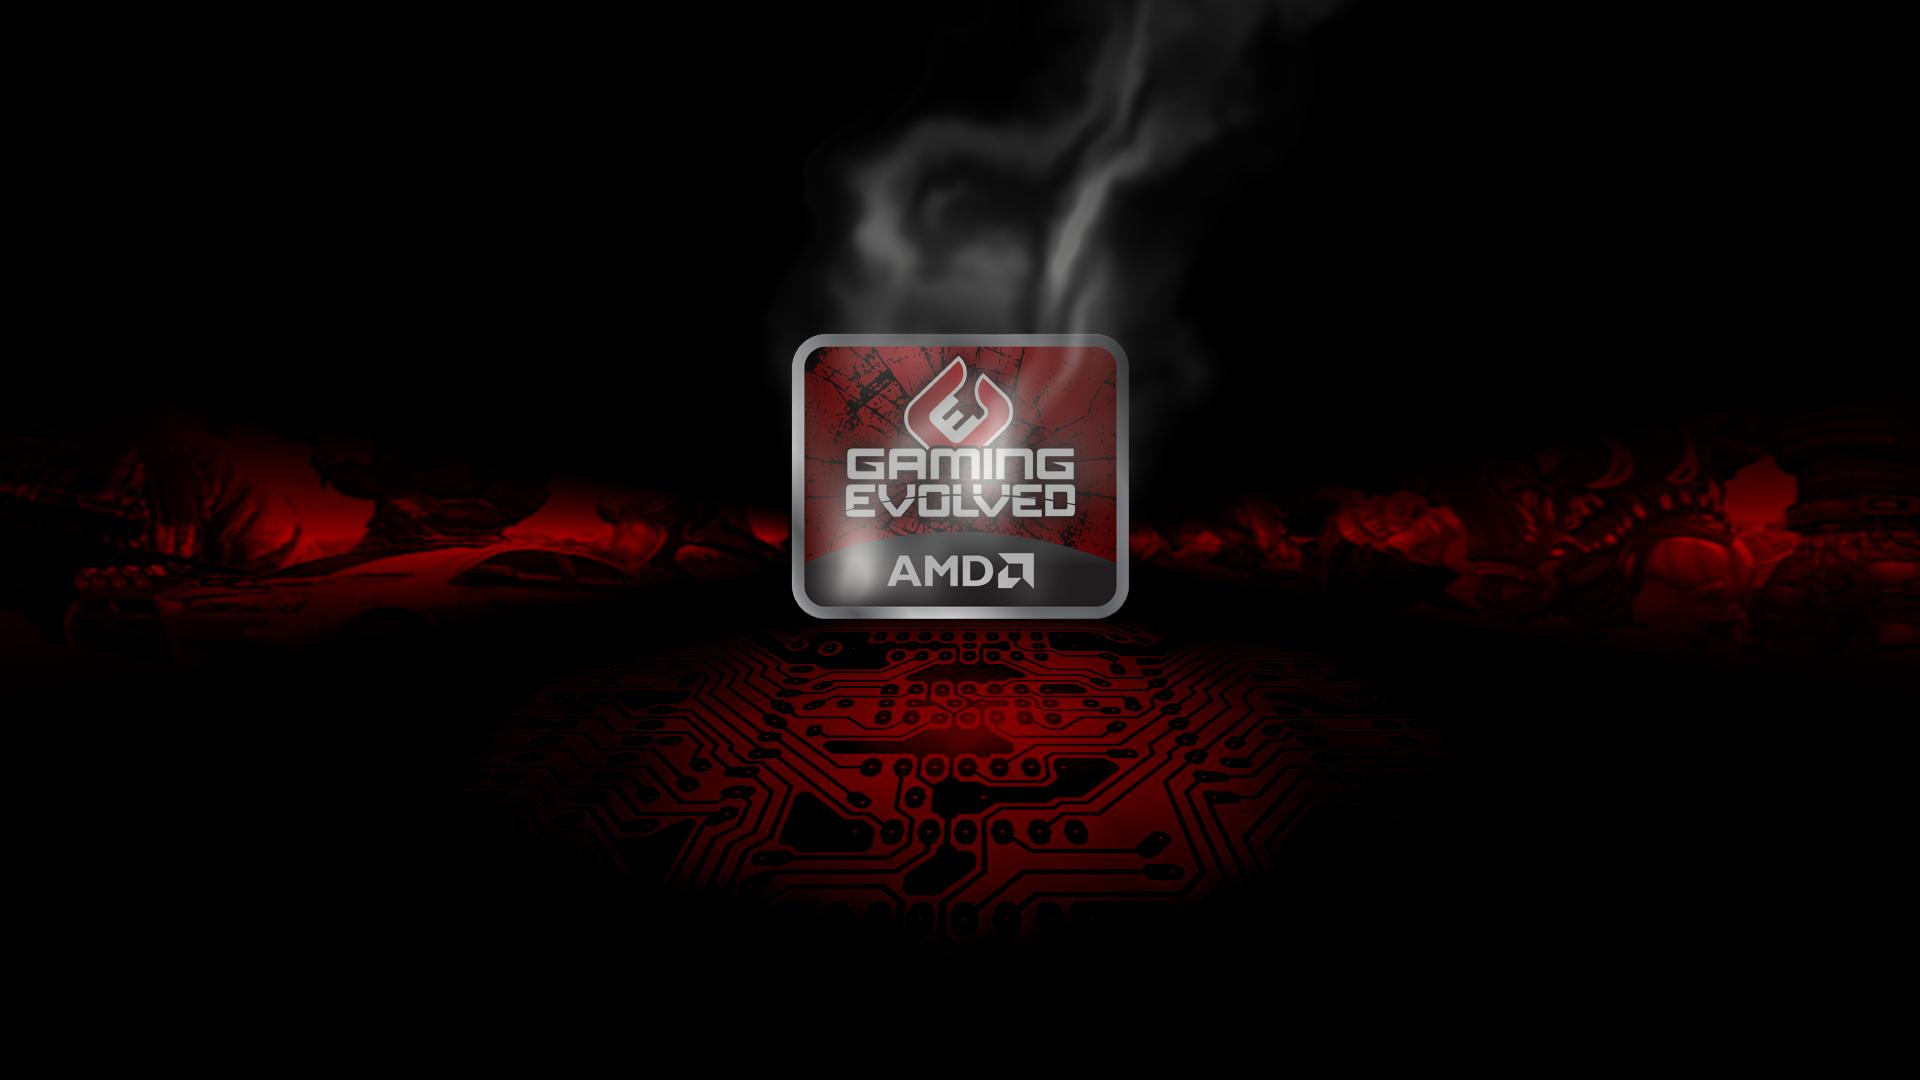 amd fx background by - photo #10